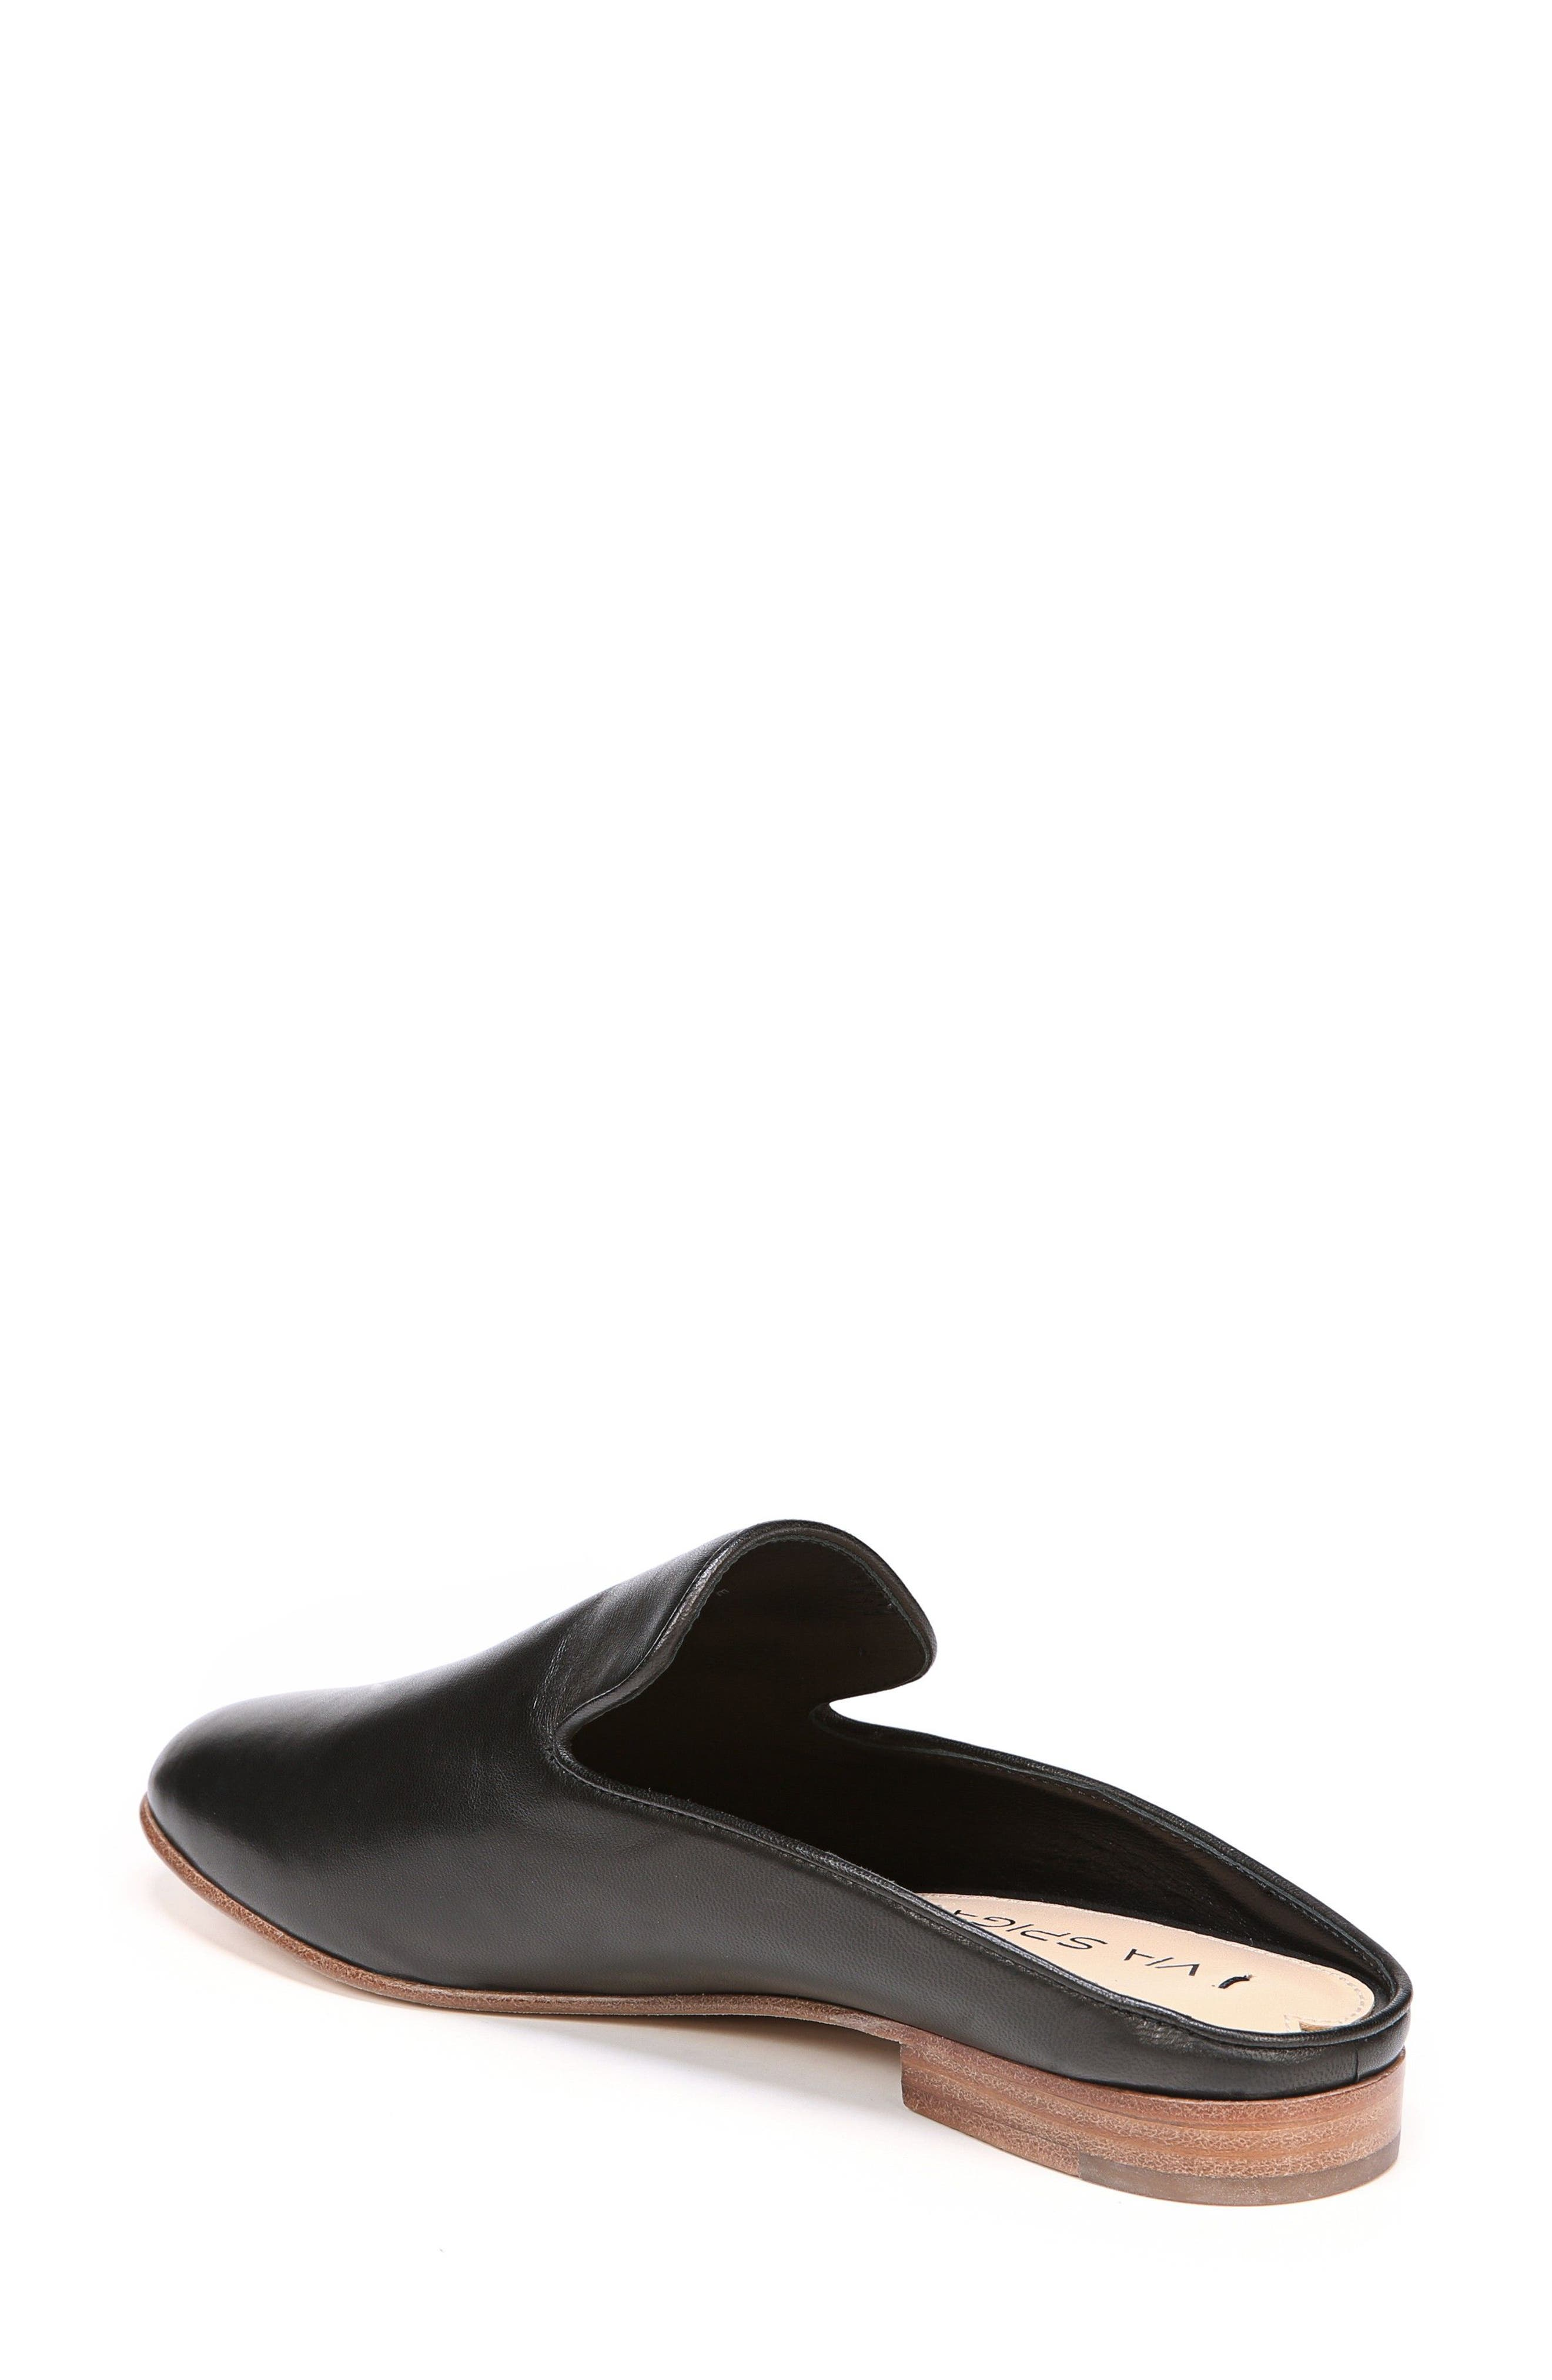 Yeo Loafer Mule,                             Alternate thumbnail 2, color,                             003